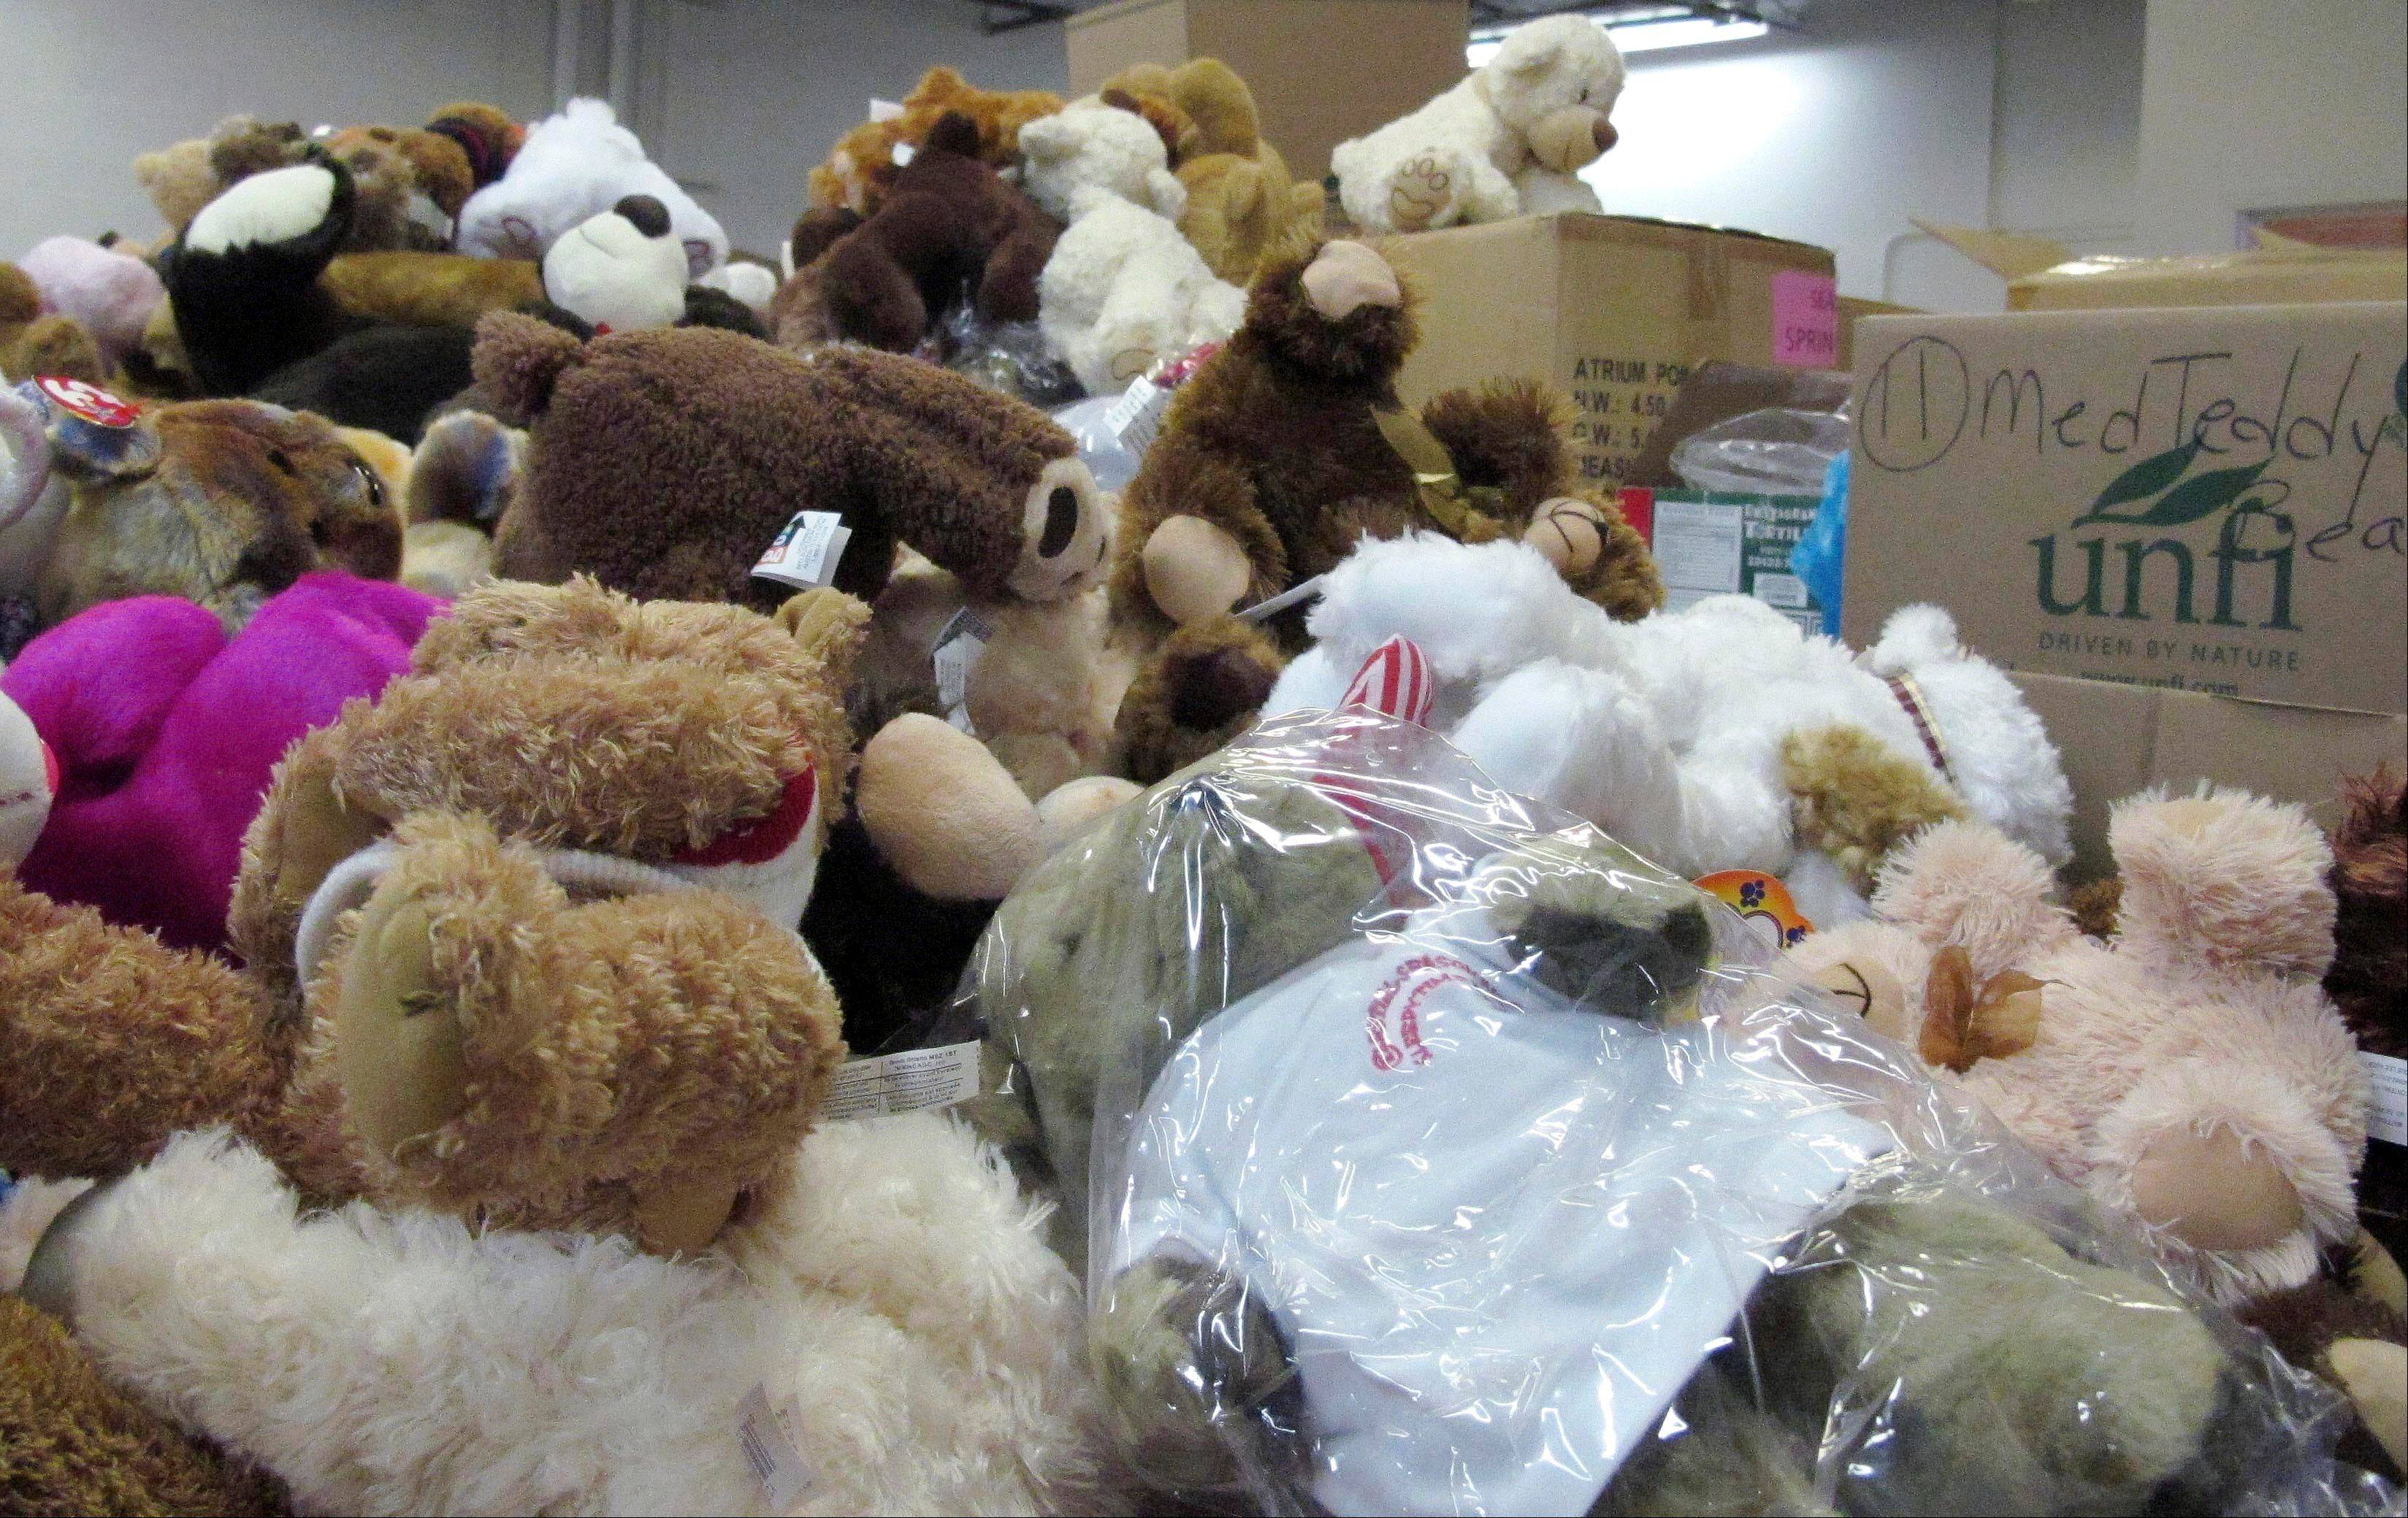 Newtown officials and families of those killed have given away 63,790 stuffed animals and thousands of other gifts that poured into the town in the weeks following the massacre. The final boxes of toys and school supplies were shipped out of the warehouse on March 29, 2013.